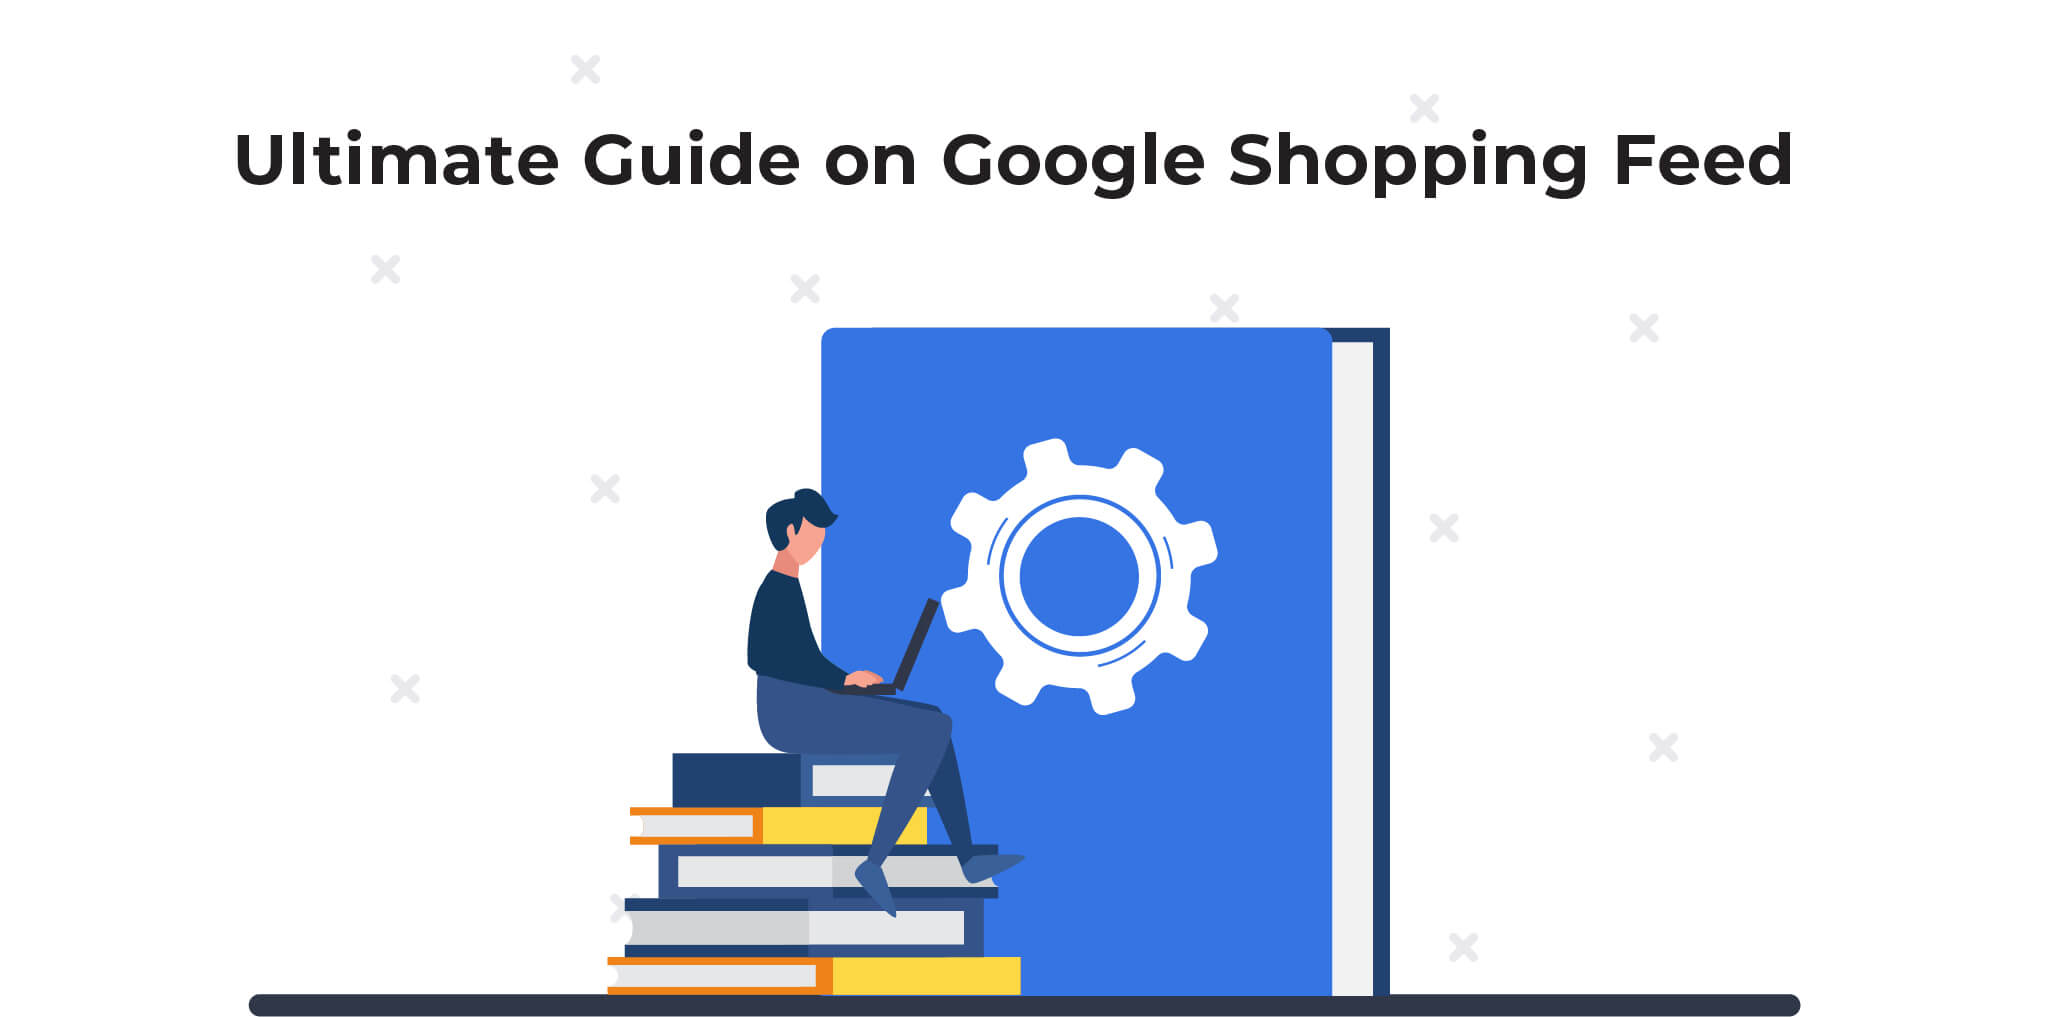 Ultimate Guide on Google Shopping Feed